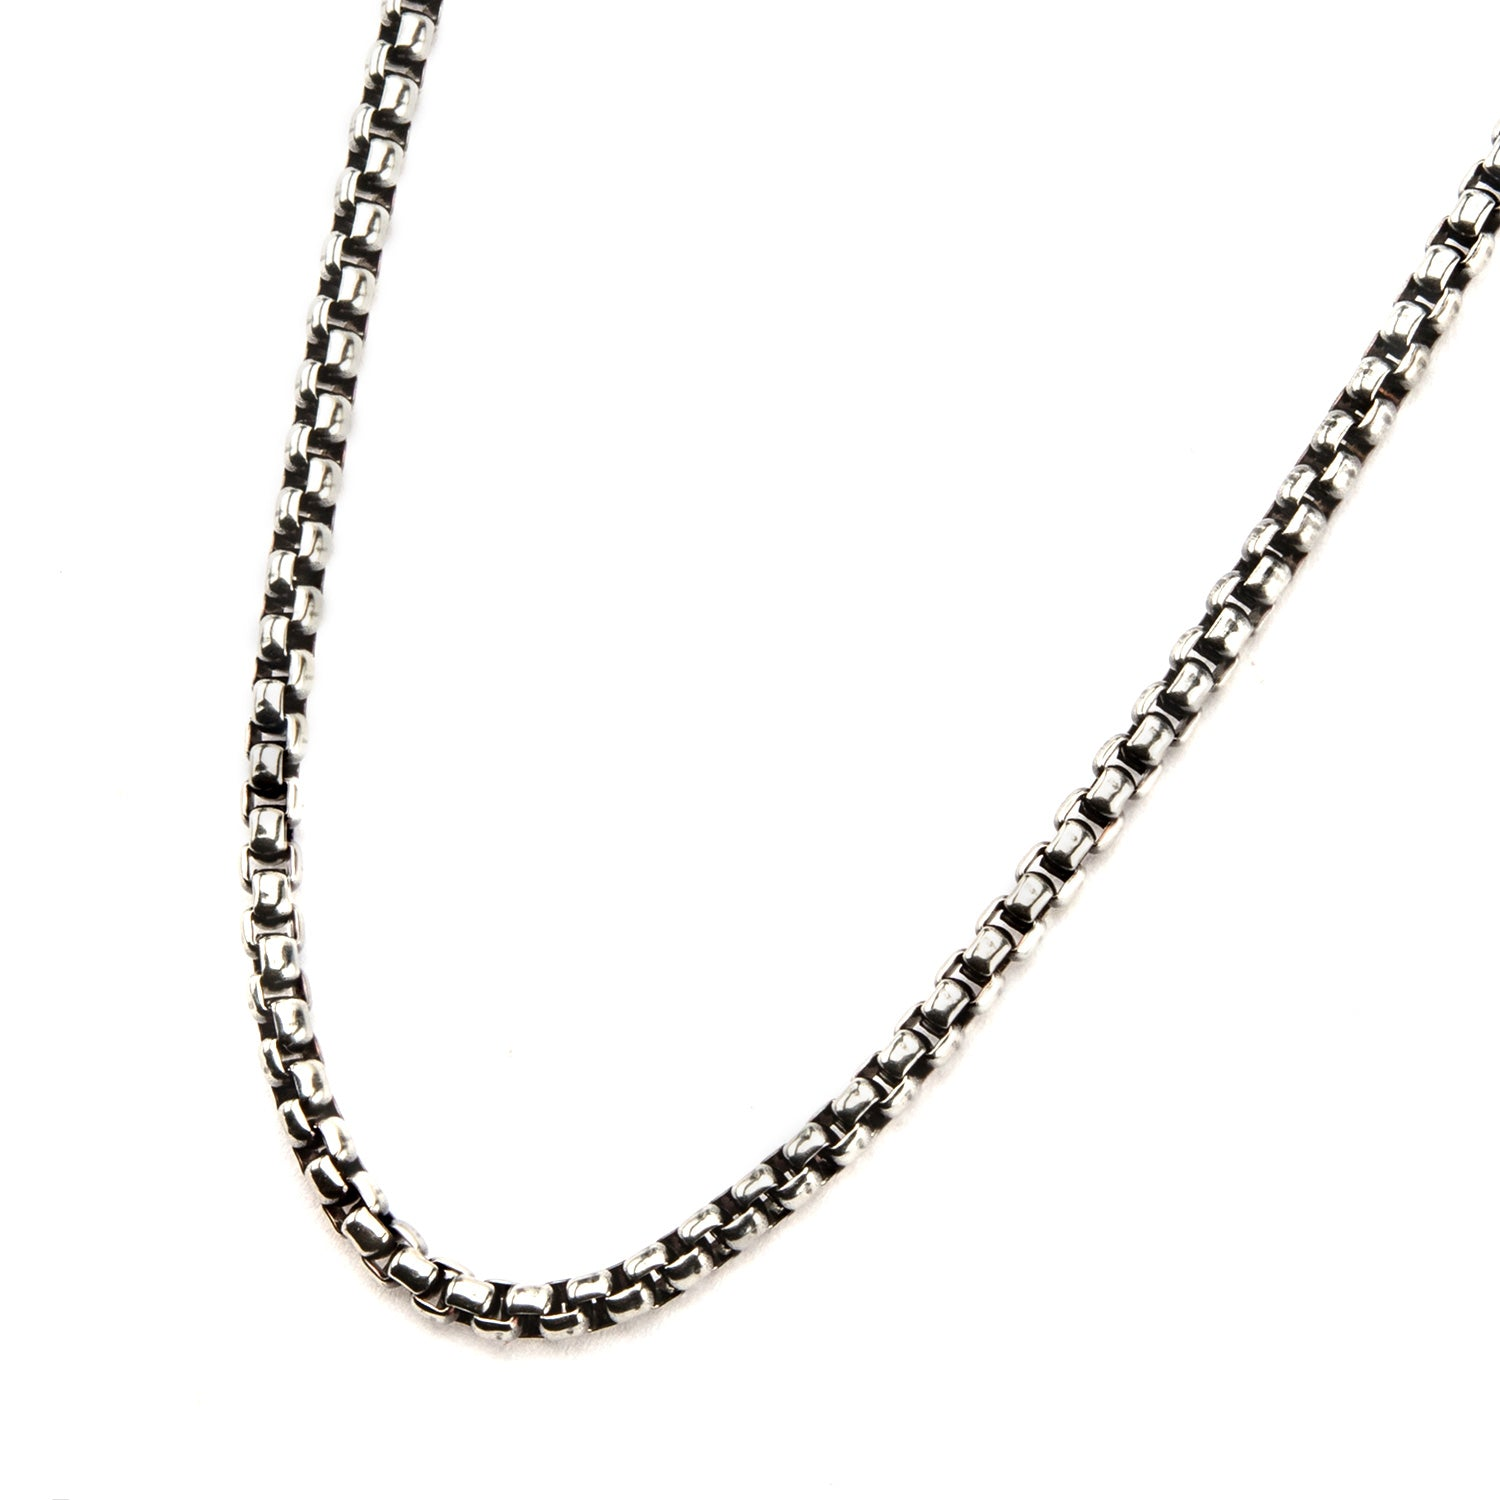 Stainless Steel Bold Box Necklaces for Men